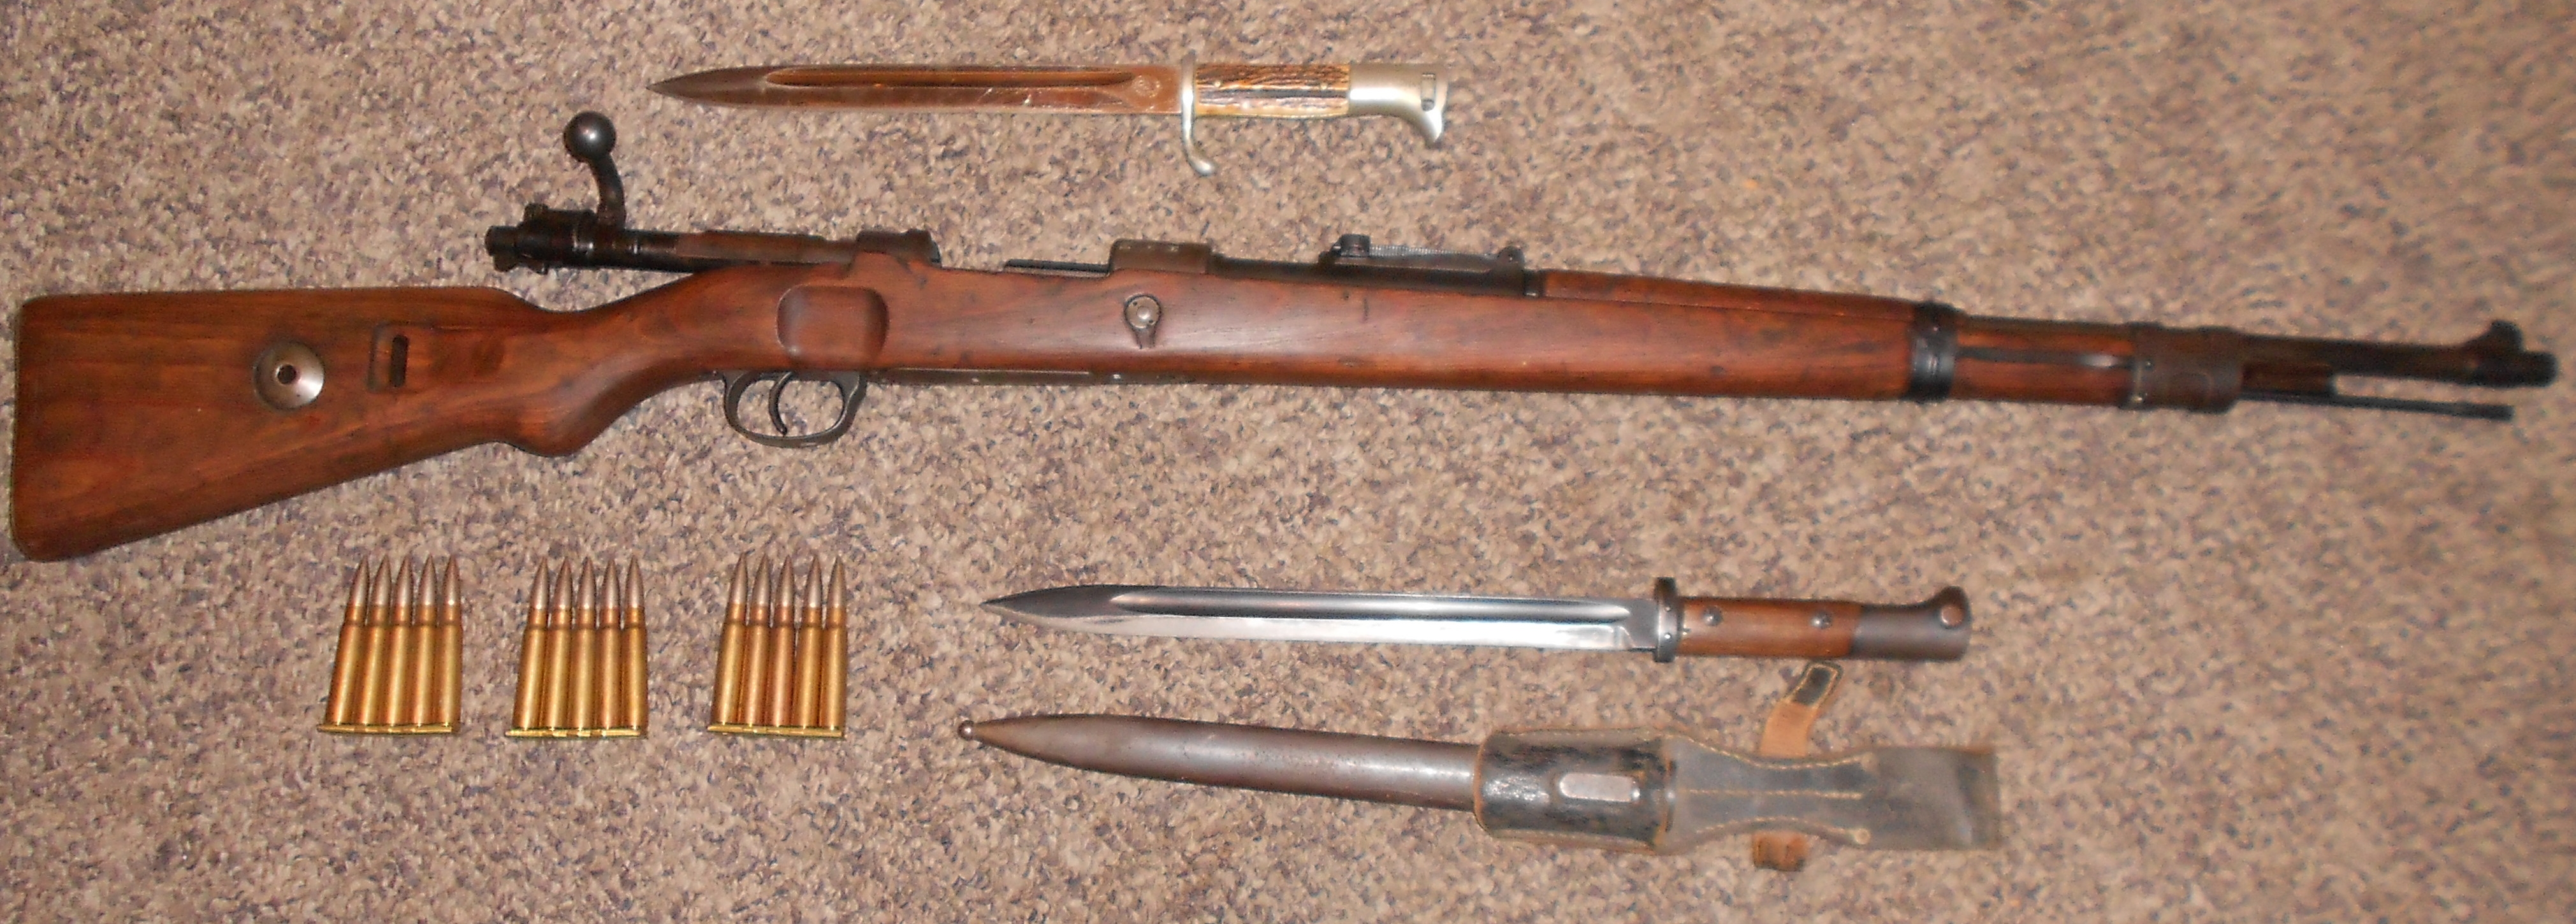 Surplus Rifles Pt4 K98 German Mauser Review